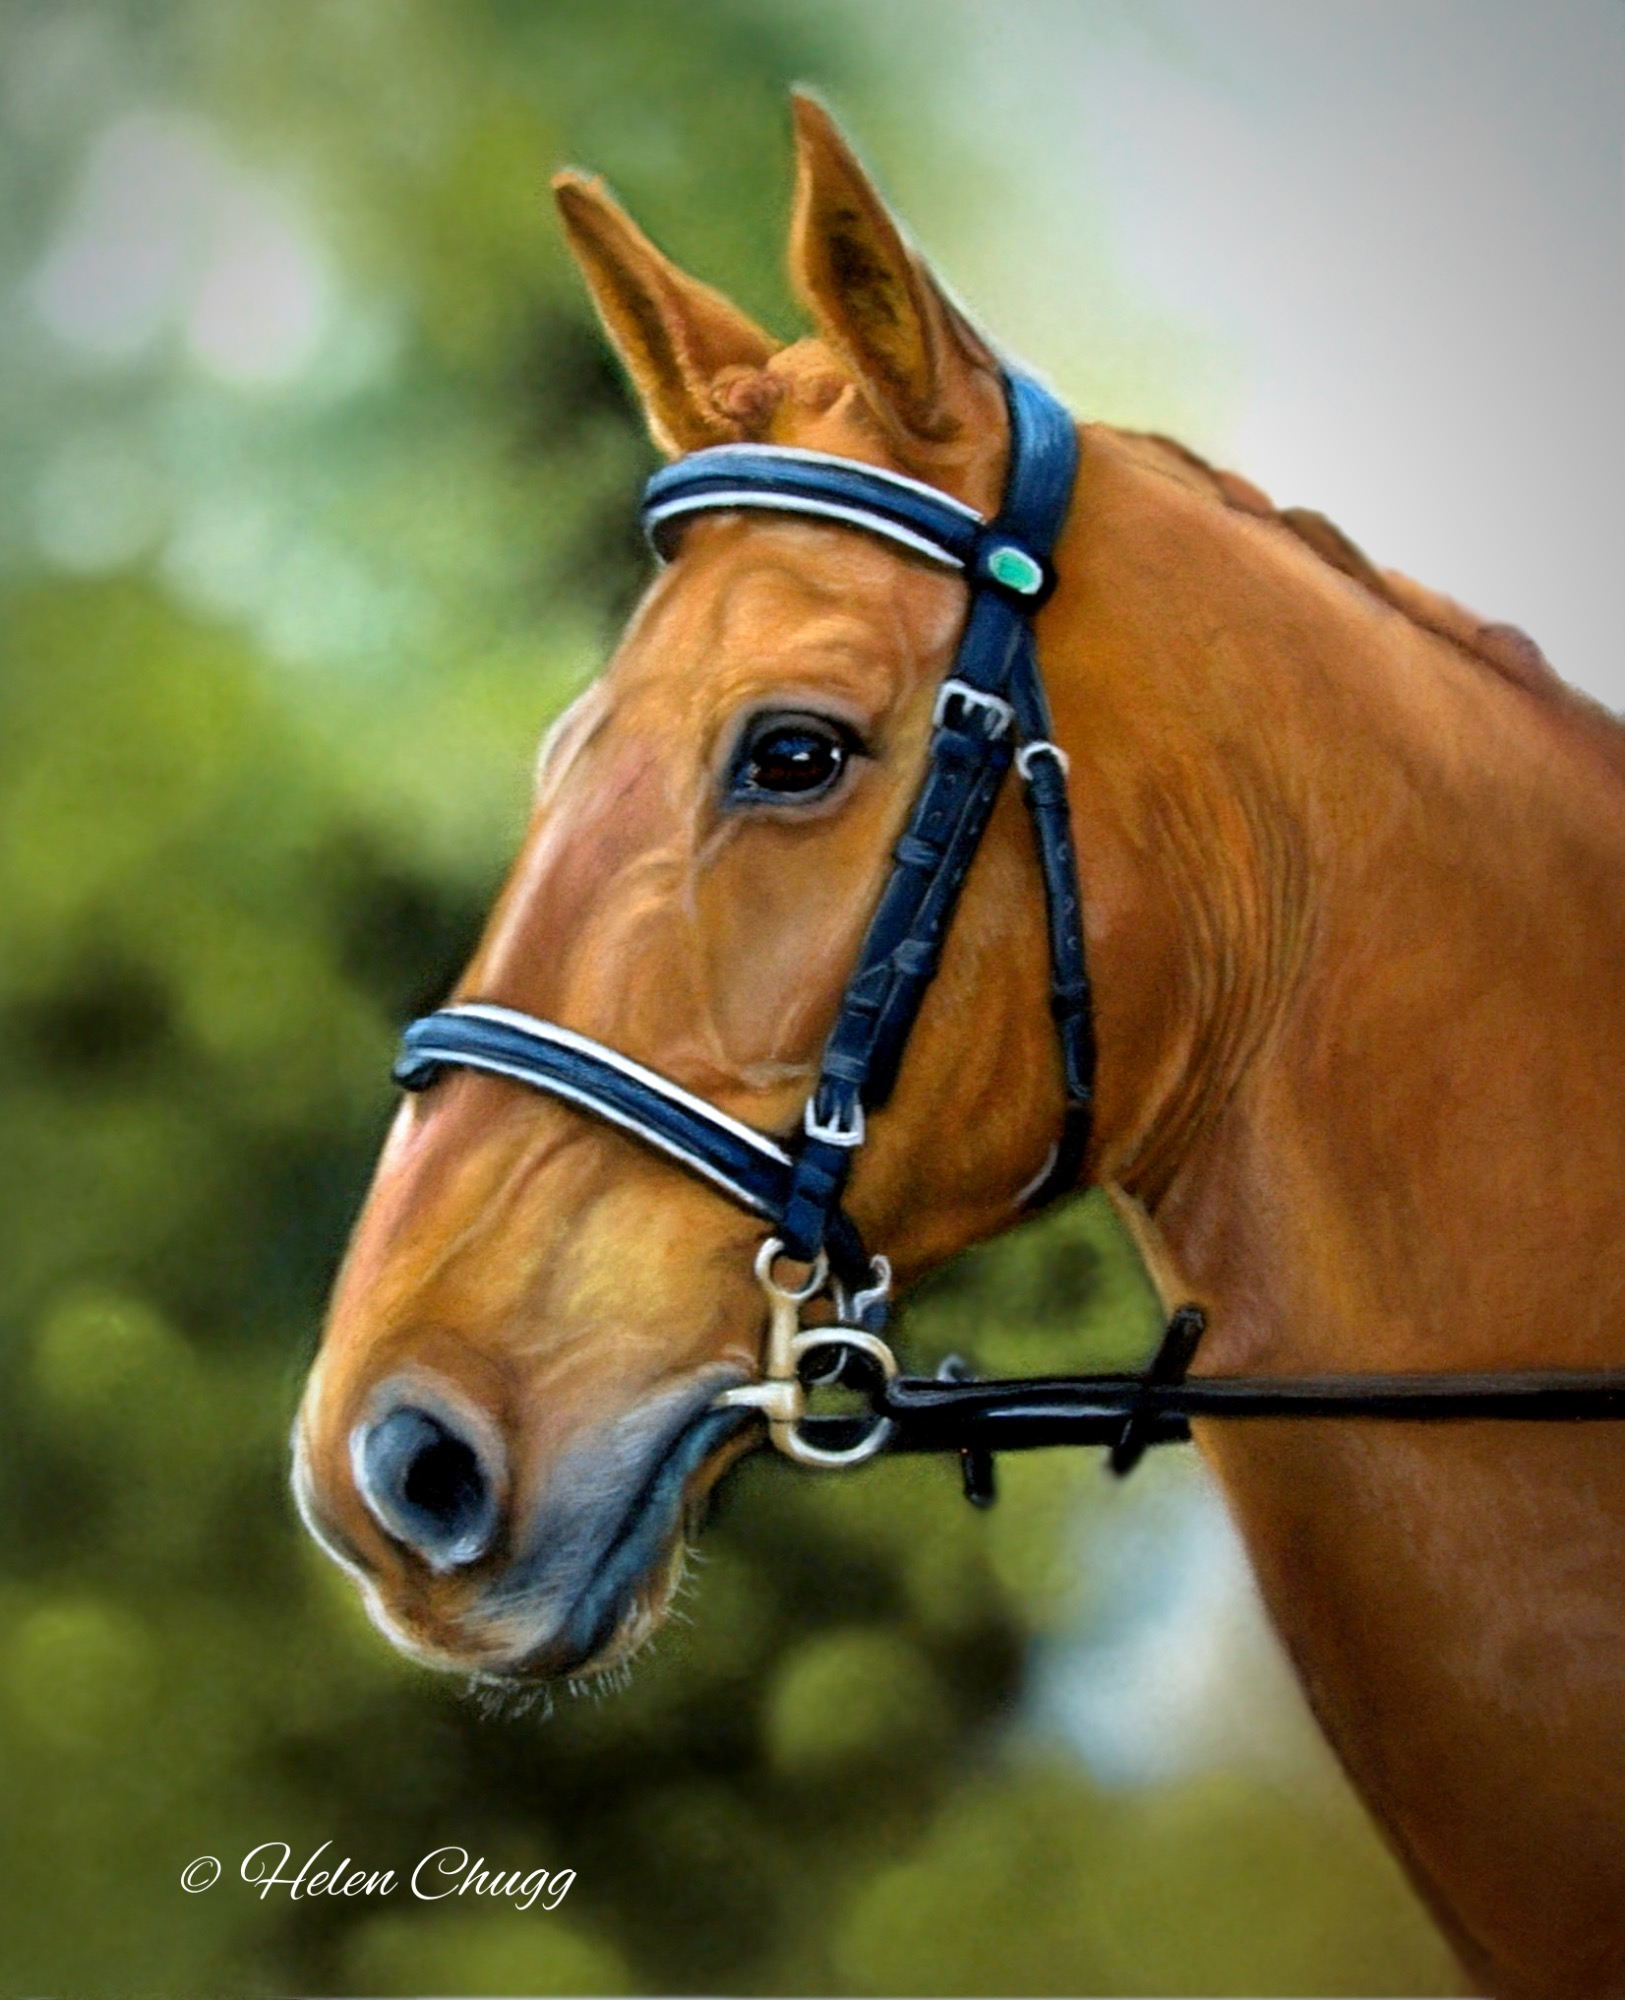 chestnut coloured horse with bridle against a tree background